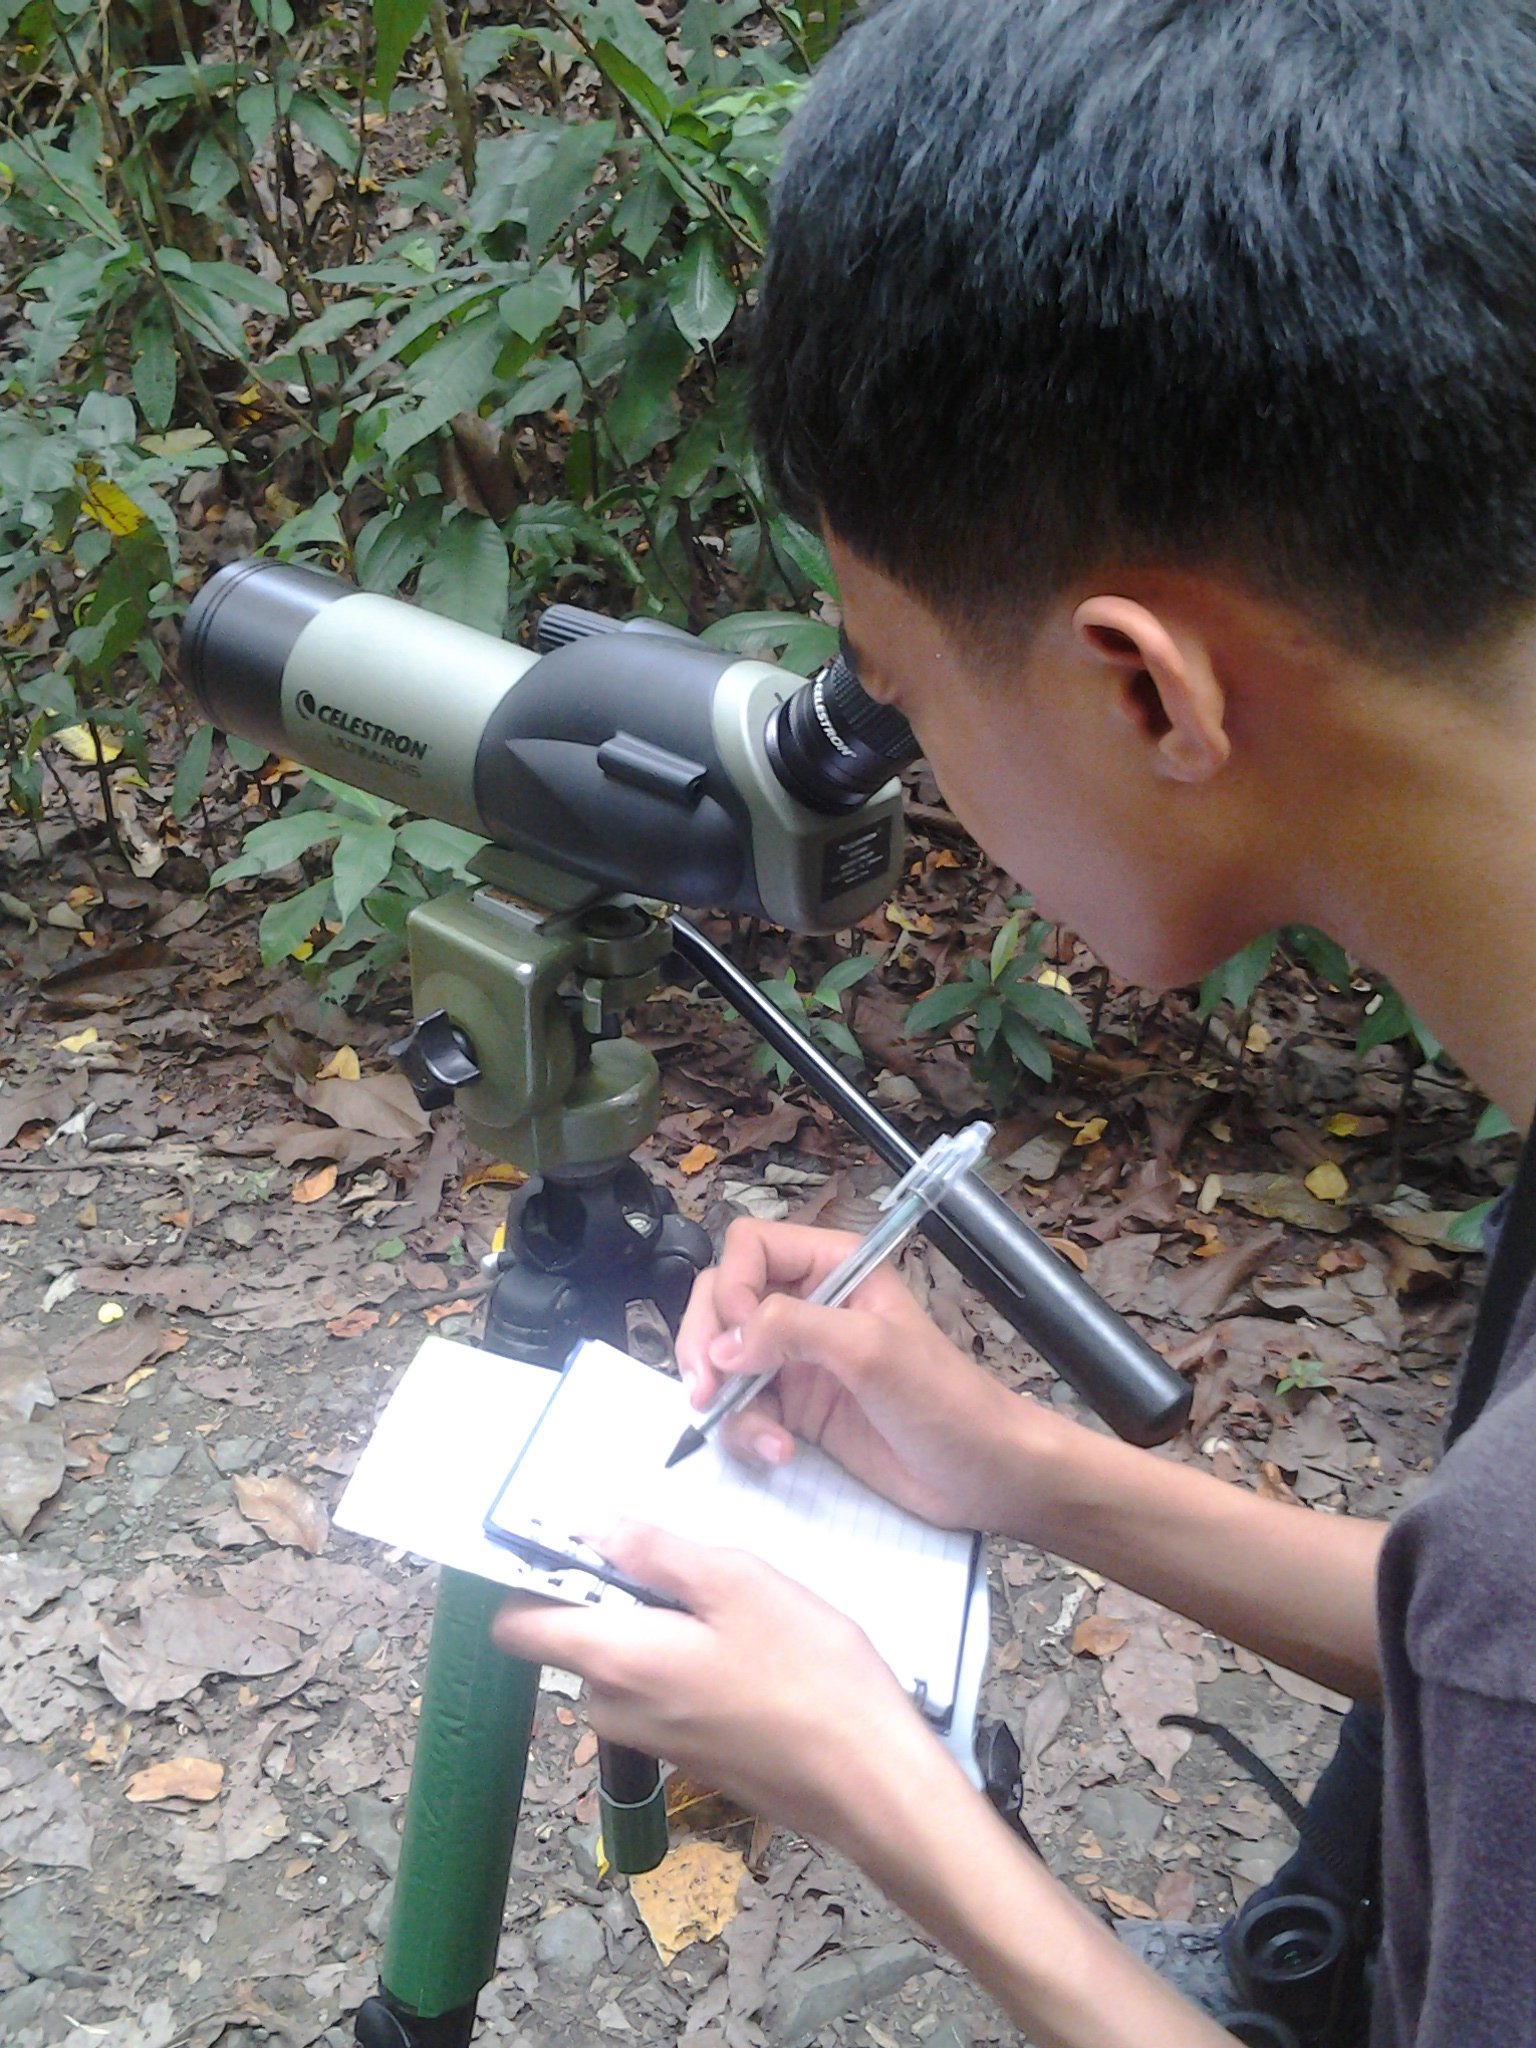 Sketching the Spotted Wood-Kingfisher through the scope. Photo by Maia Tanedo.